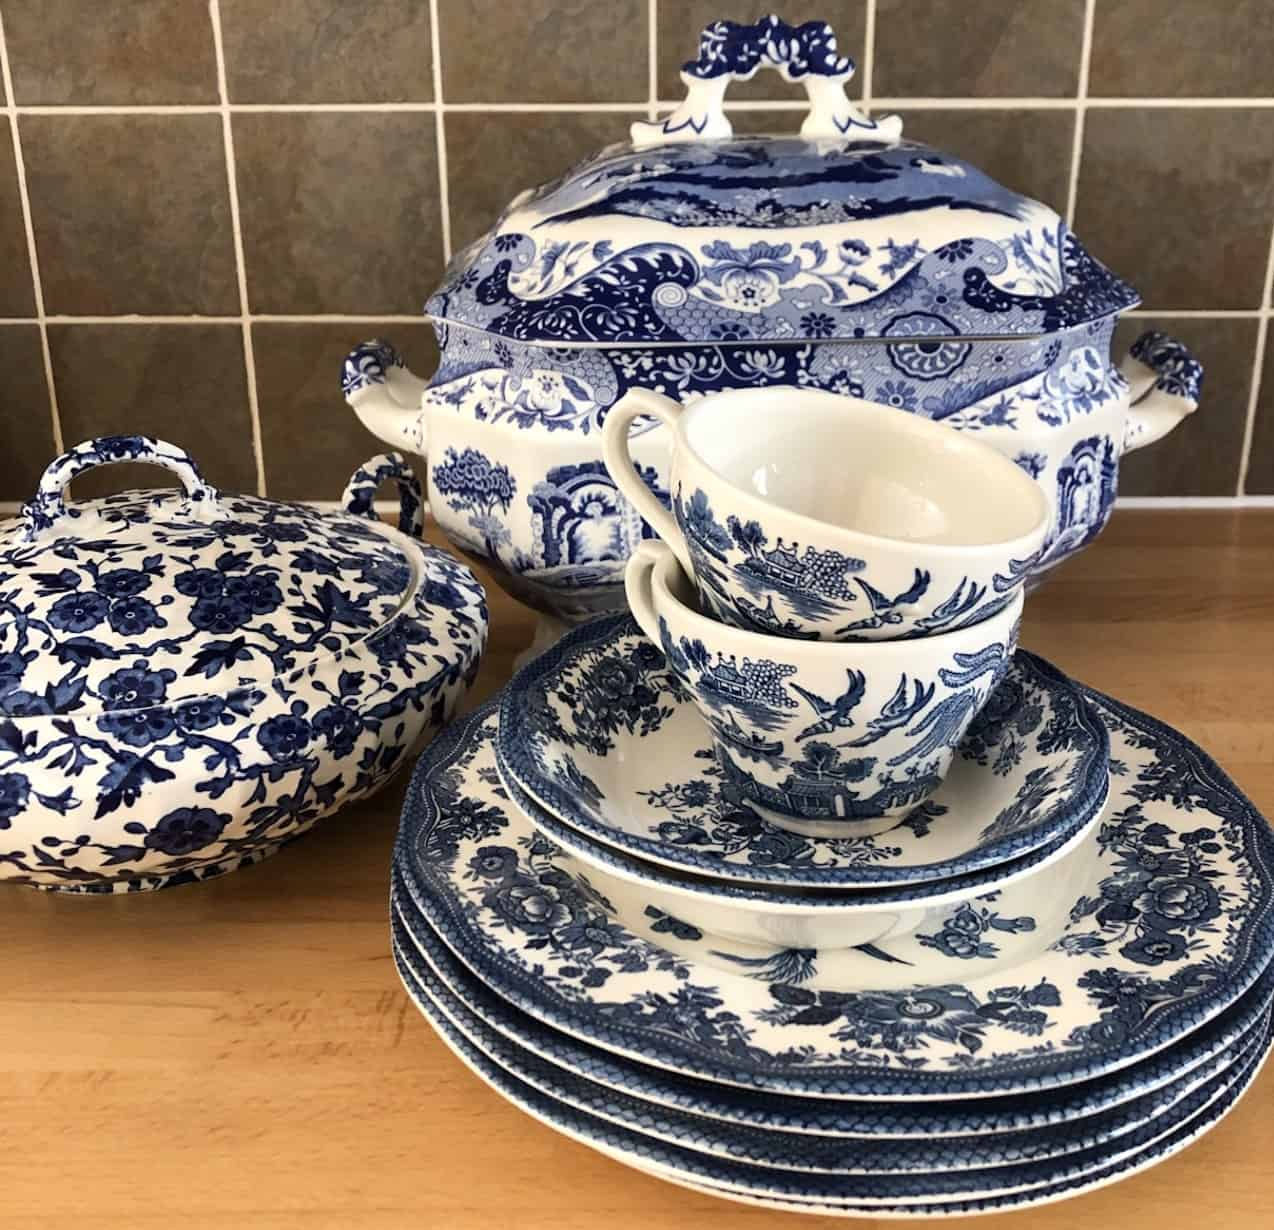 Wedgewood and Spode Blue and White Porcelain